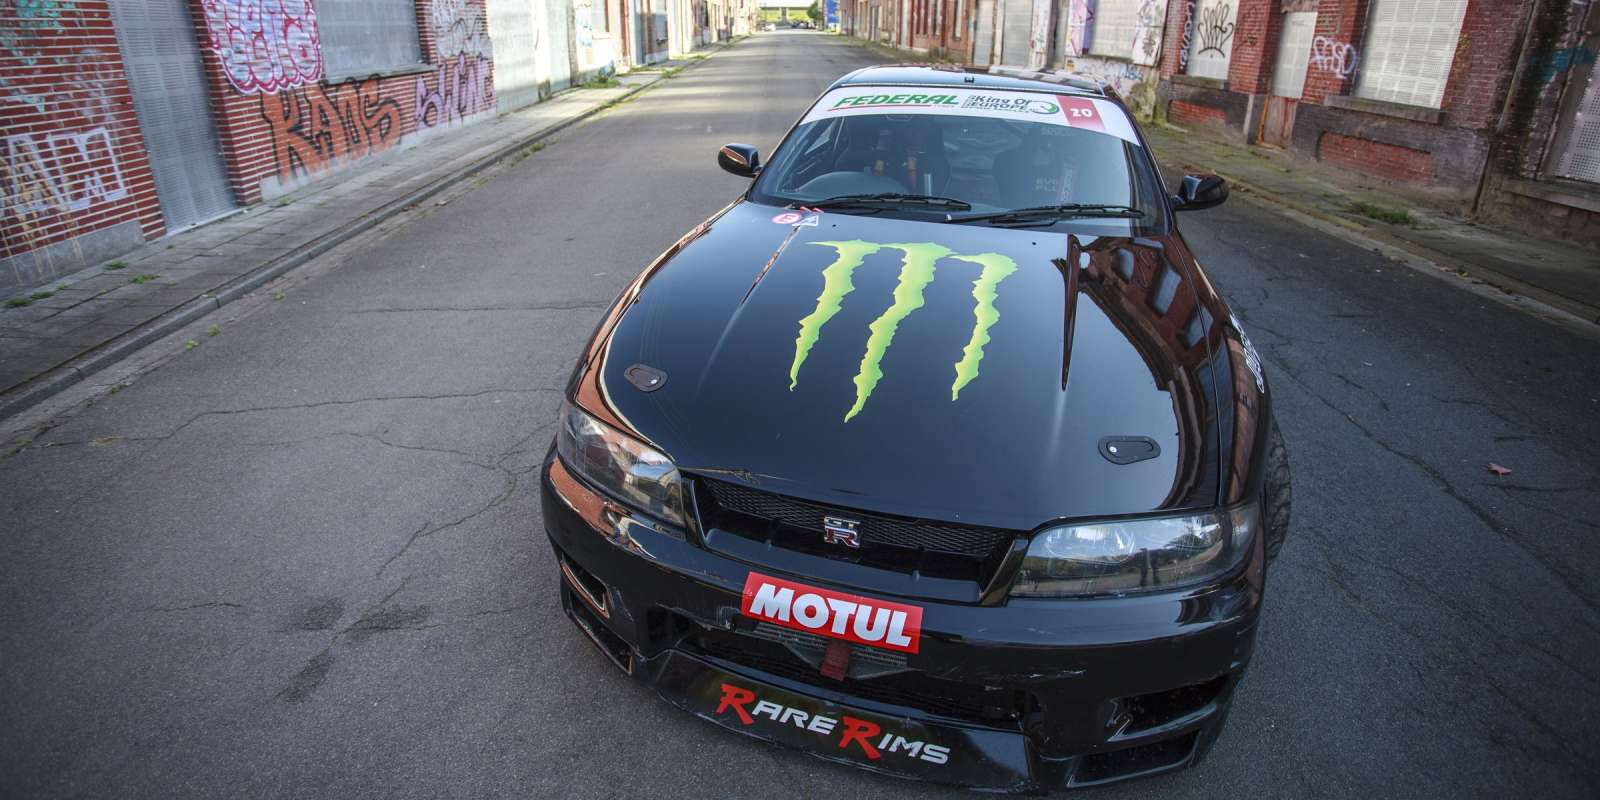 A series of images with Rick van Goethem, his car and Lewis Hamilton/Ultra Citron promotional taken in Doel, Belgium.